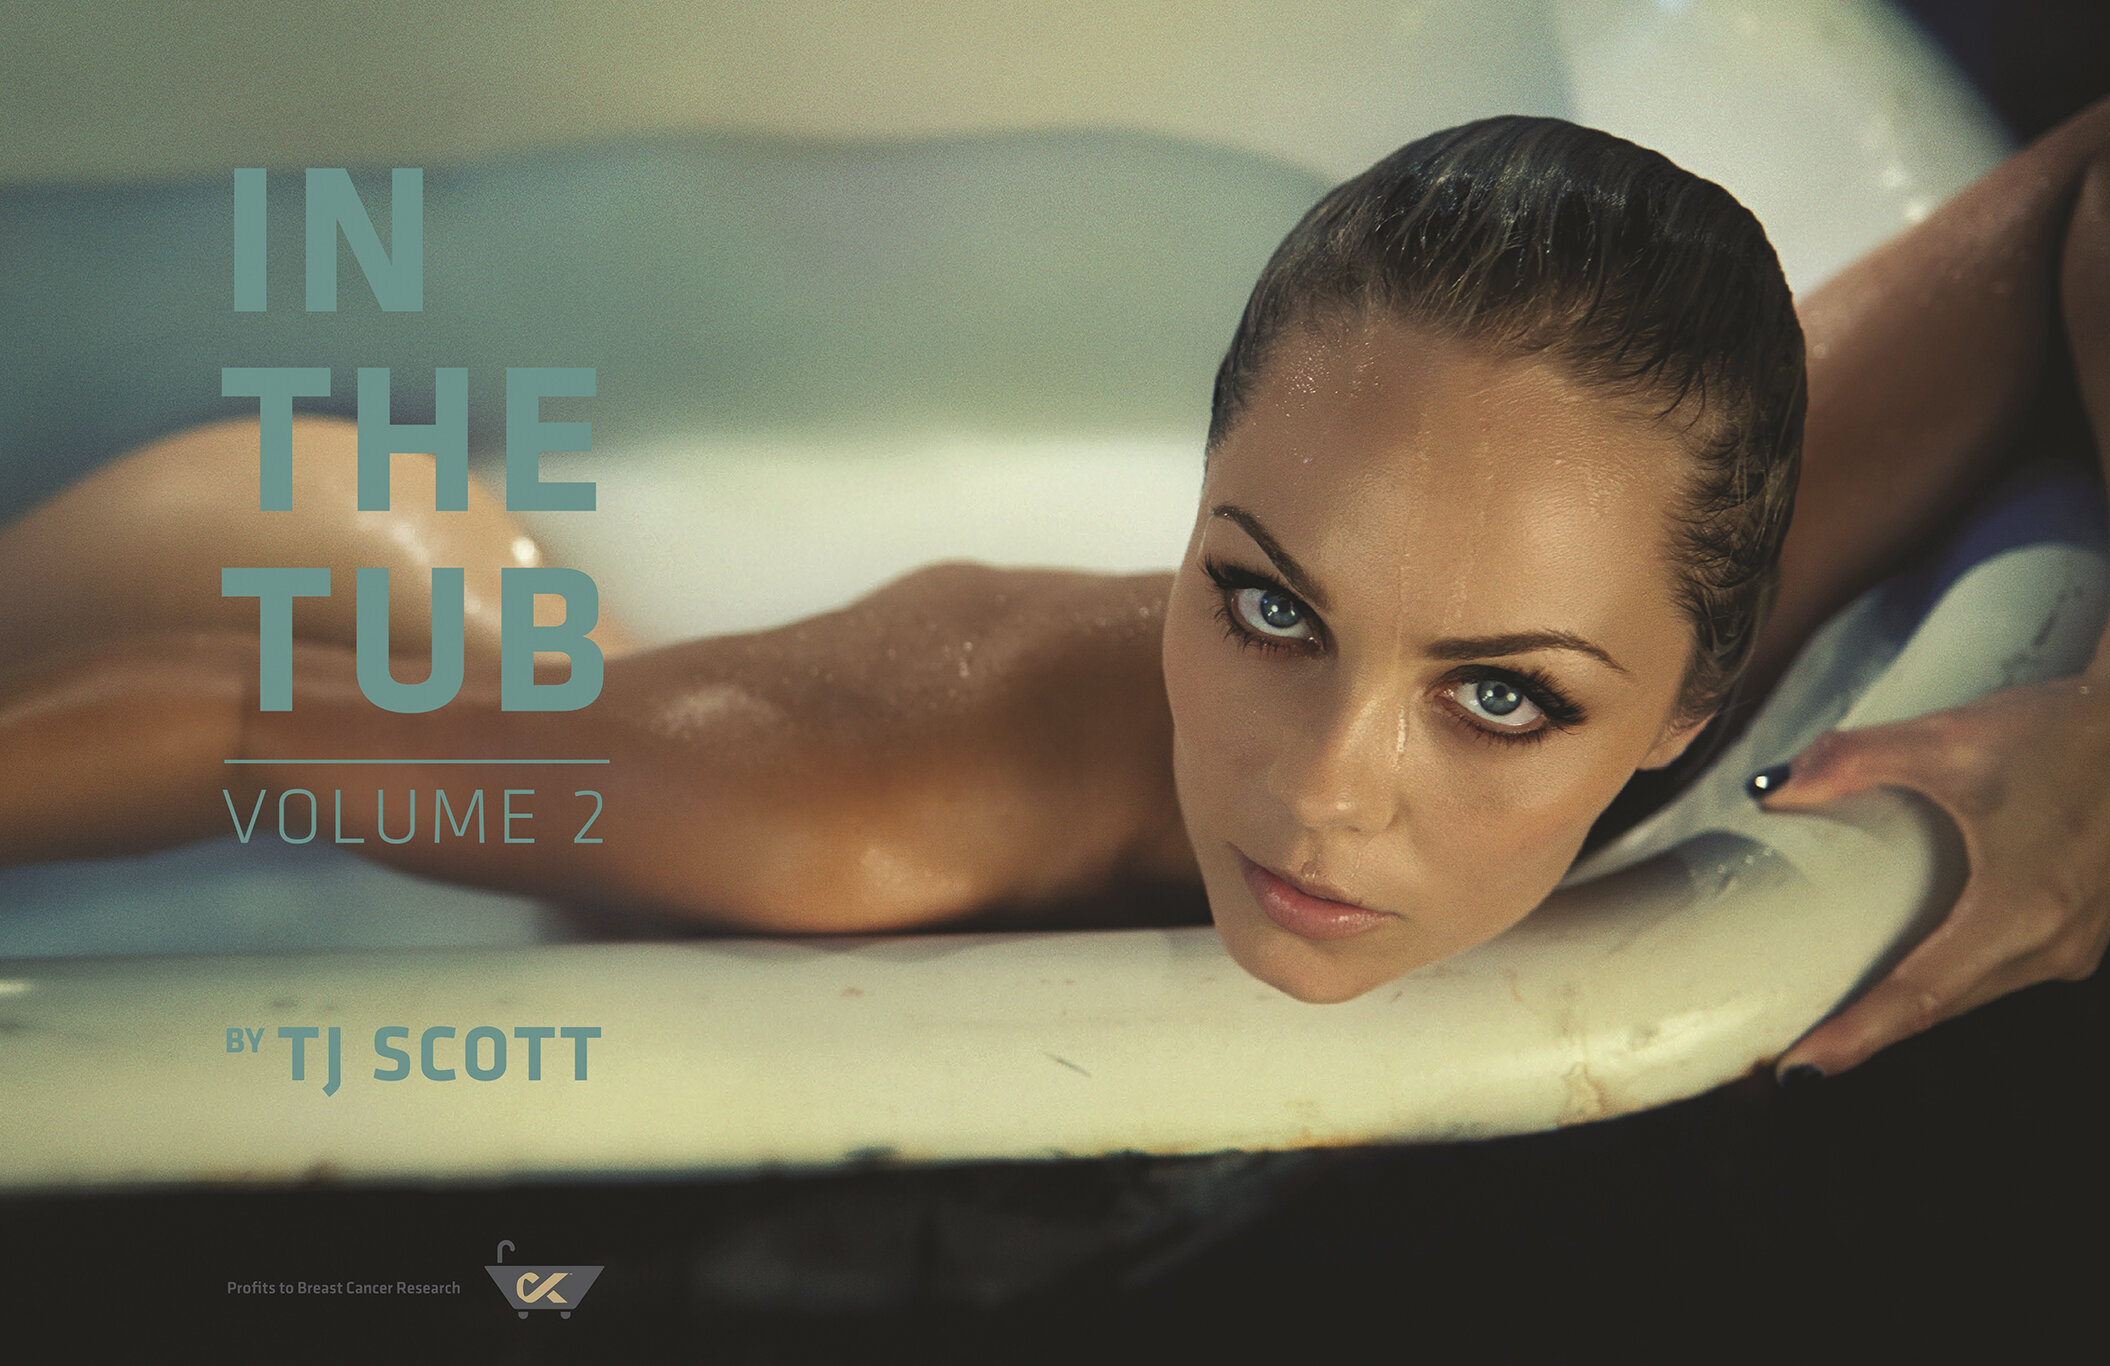 In The Tub Volume 2 Special Edition Cover - Laura Vandervoort.jpg